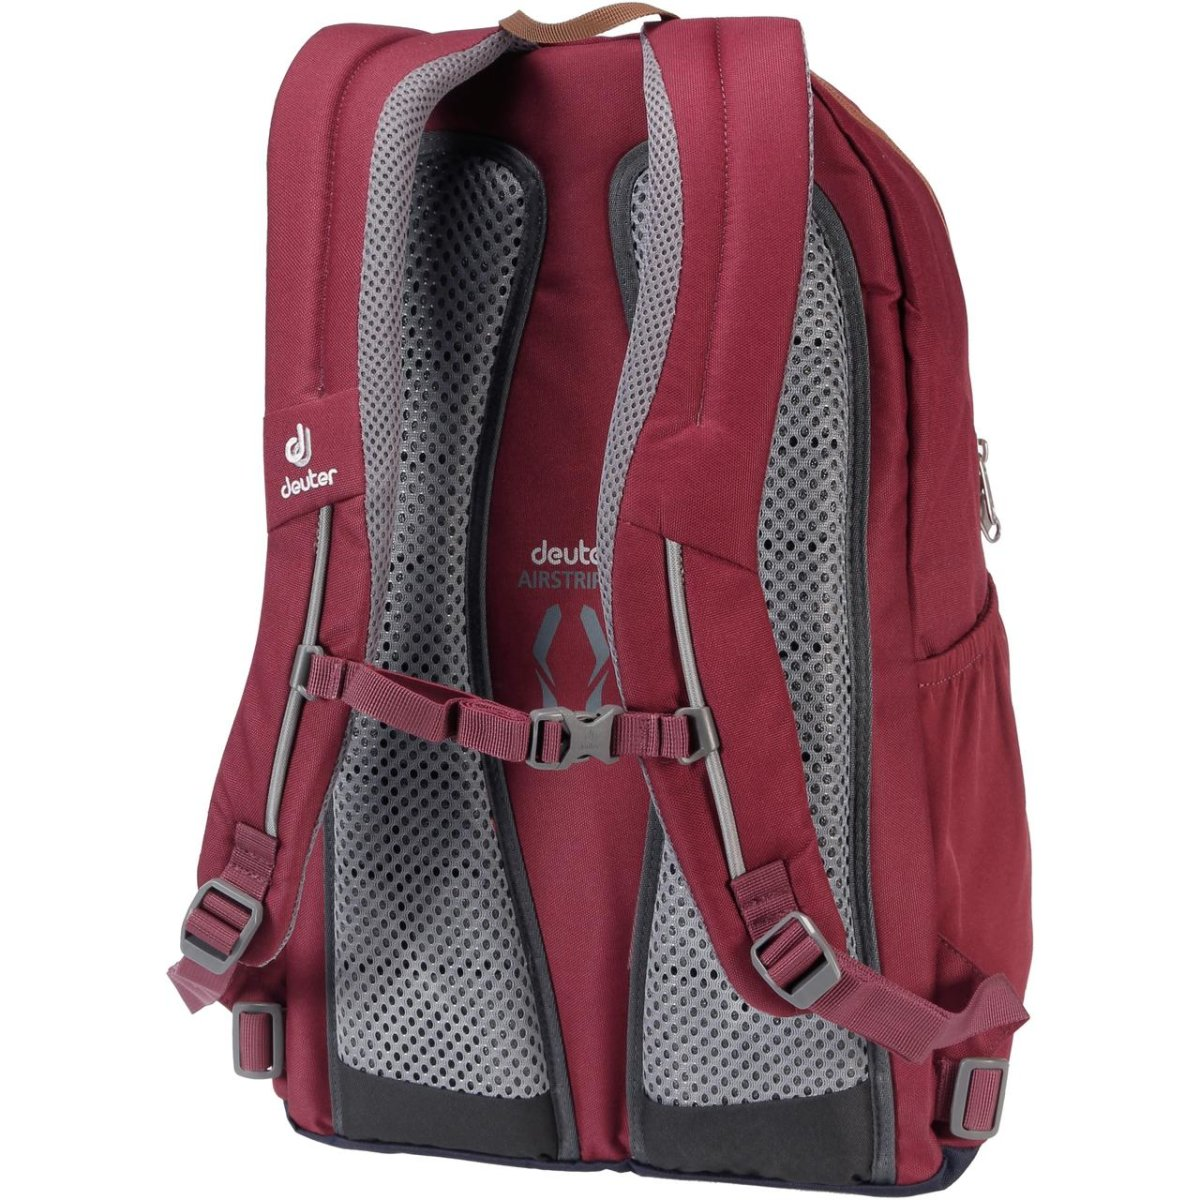 Рюкзак Deuter Gogo alpinegreen-navy (2322) Gogo 4 3820016 2322